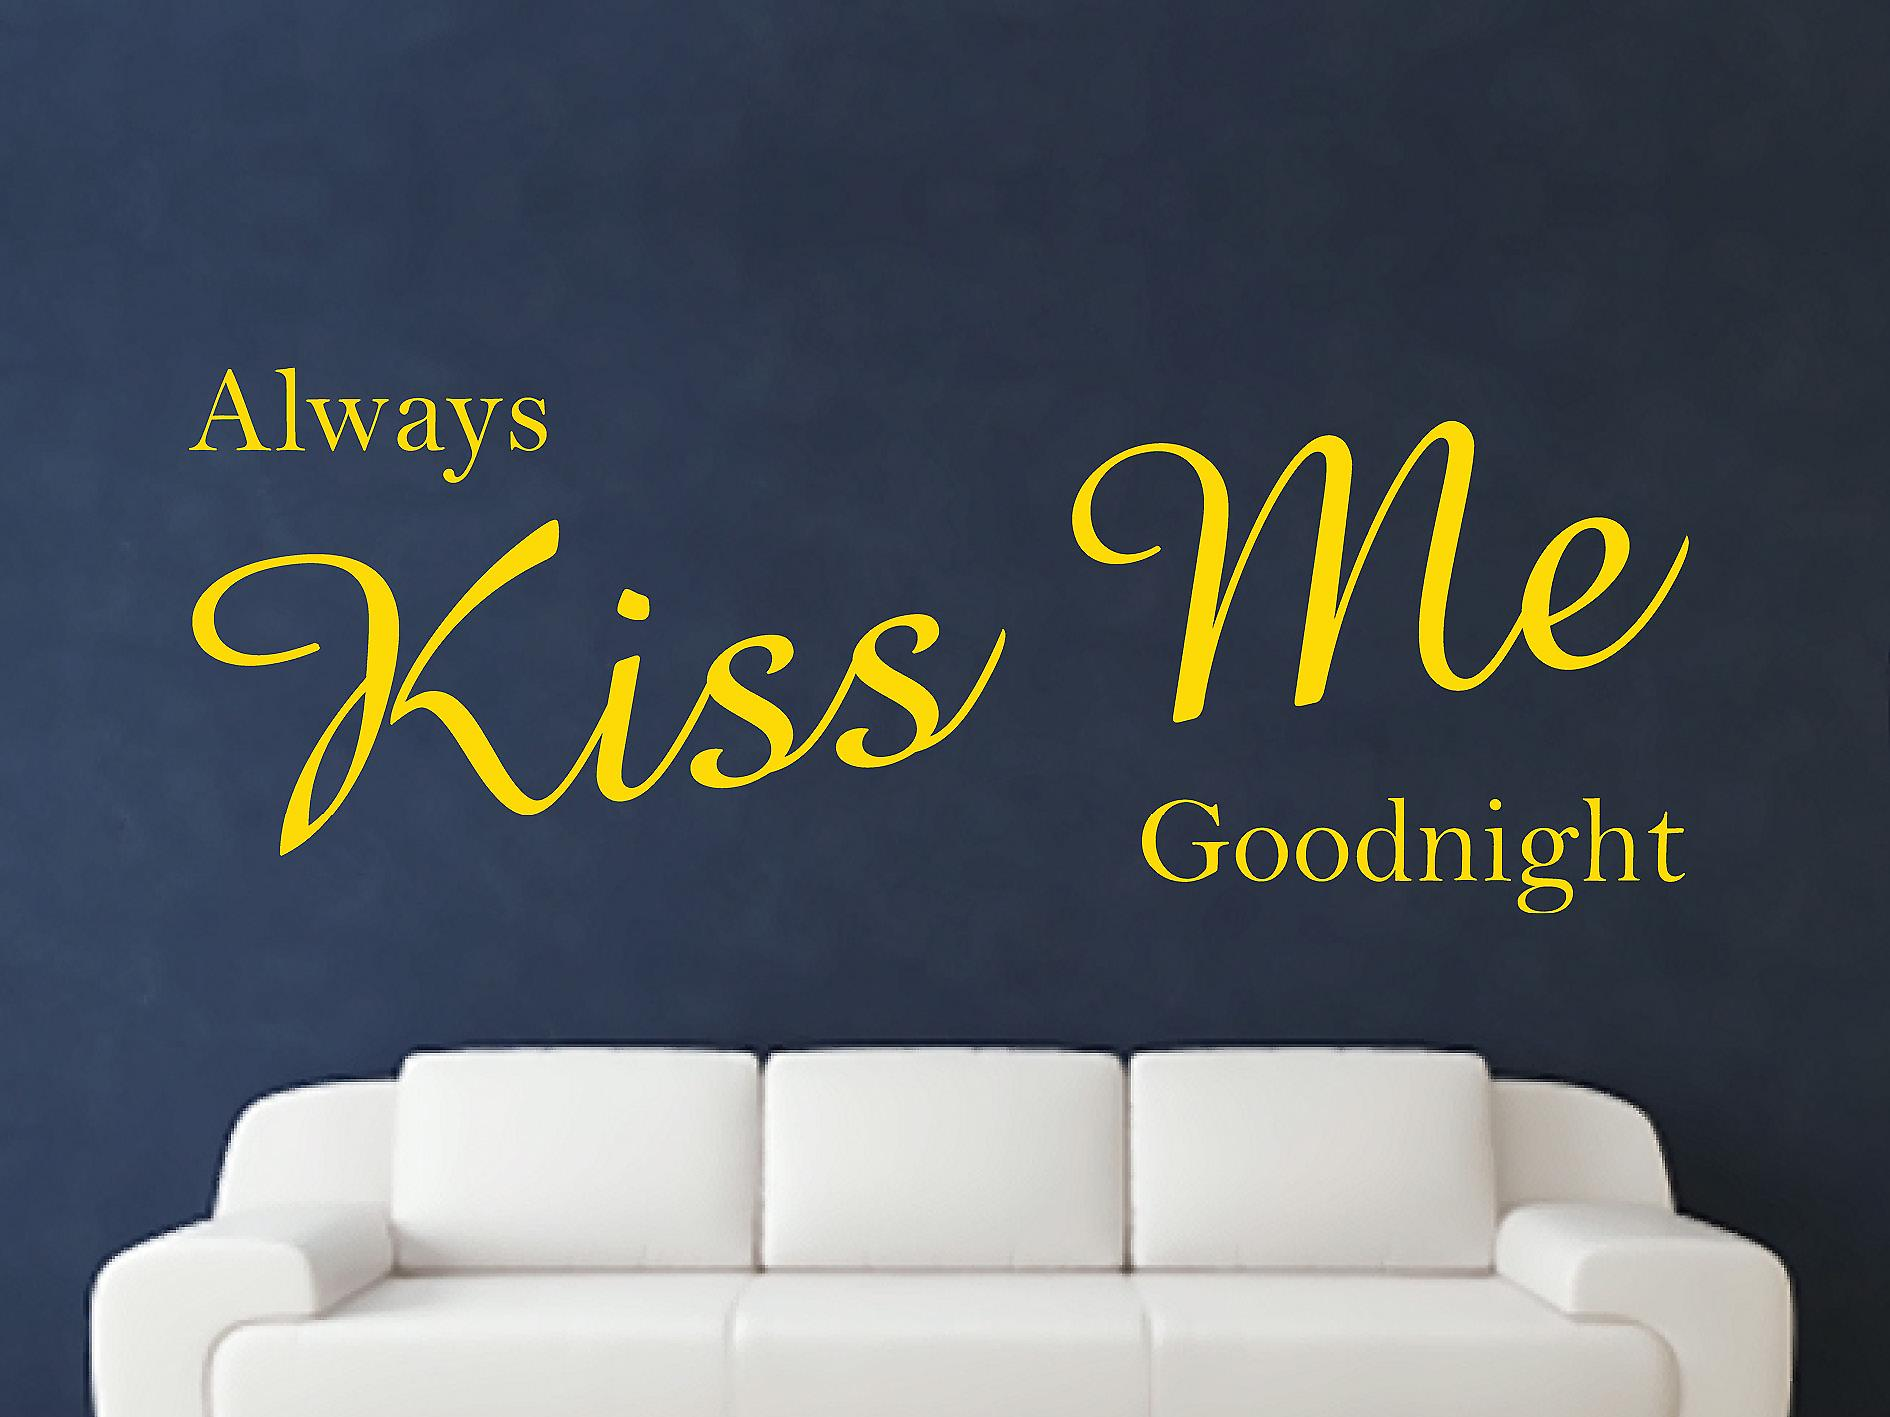 Always Kiss Me Goodnight Wall Art Sticker - Dark Yellow